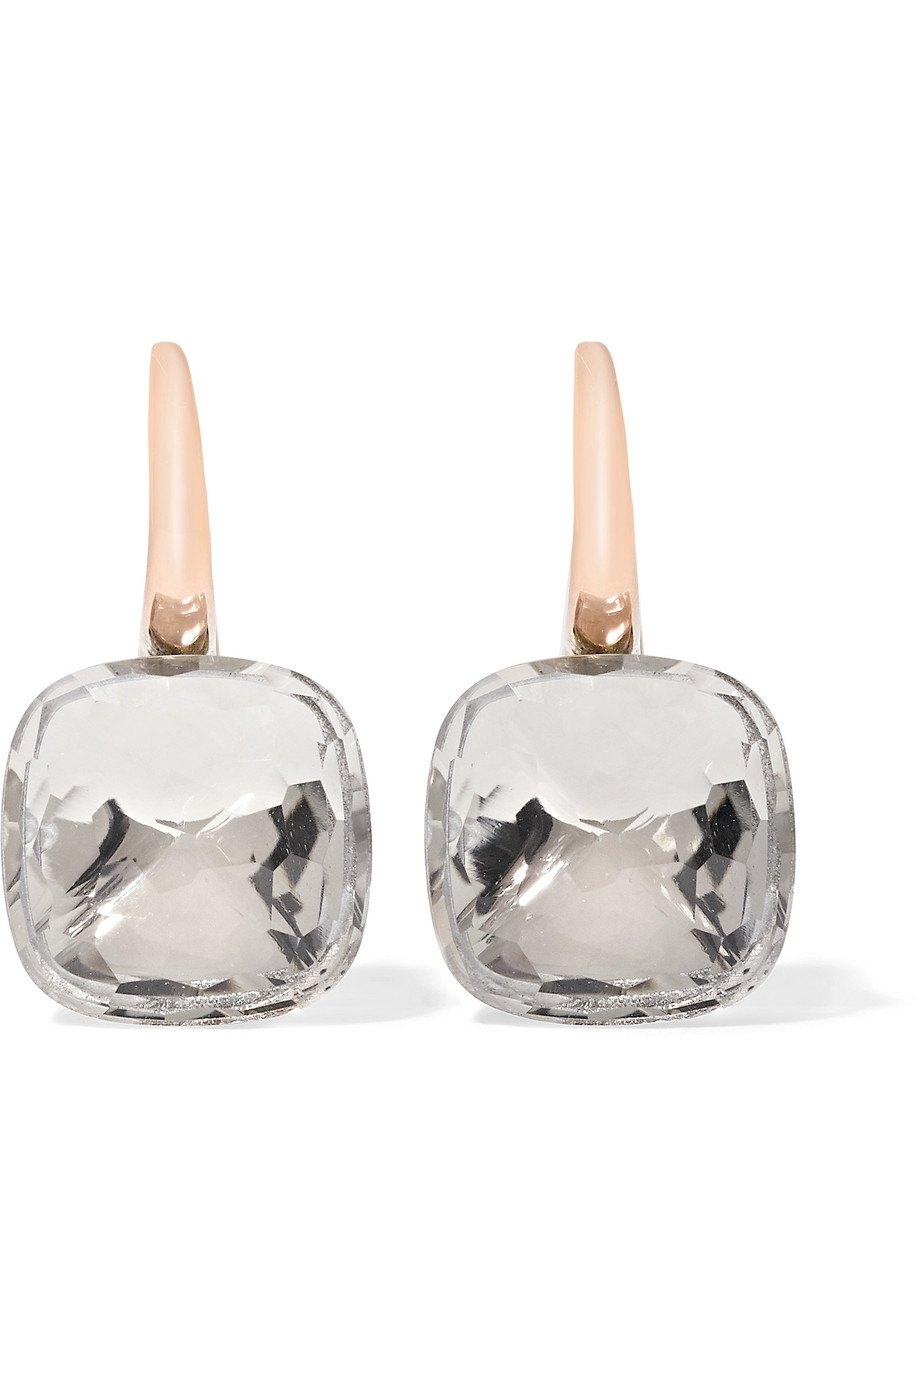 Nudo Classic 18-Karat Rose Gold Topaz Earrings, Rose Gold/Gray, Women's